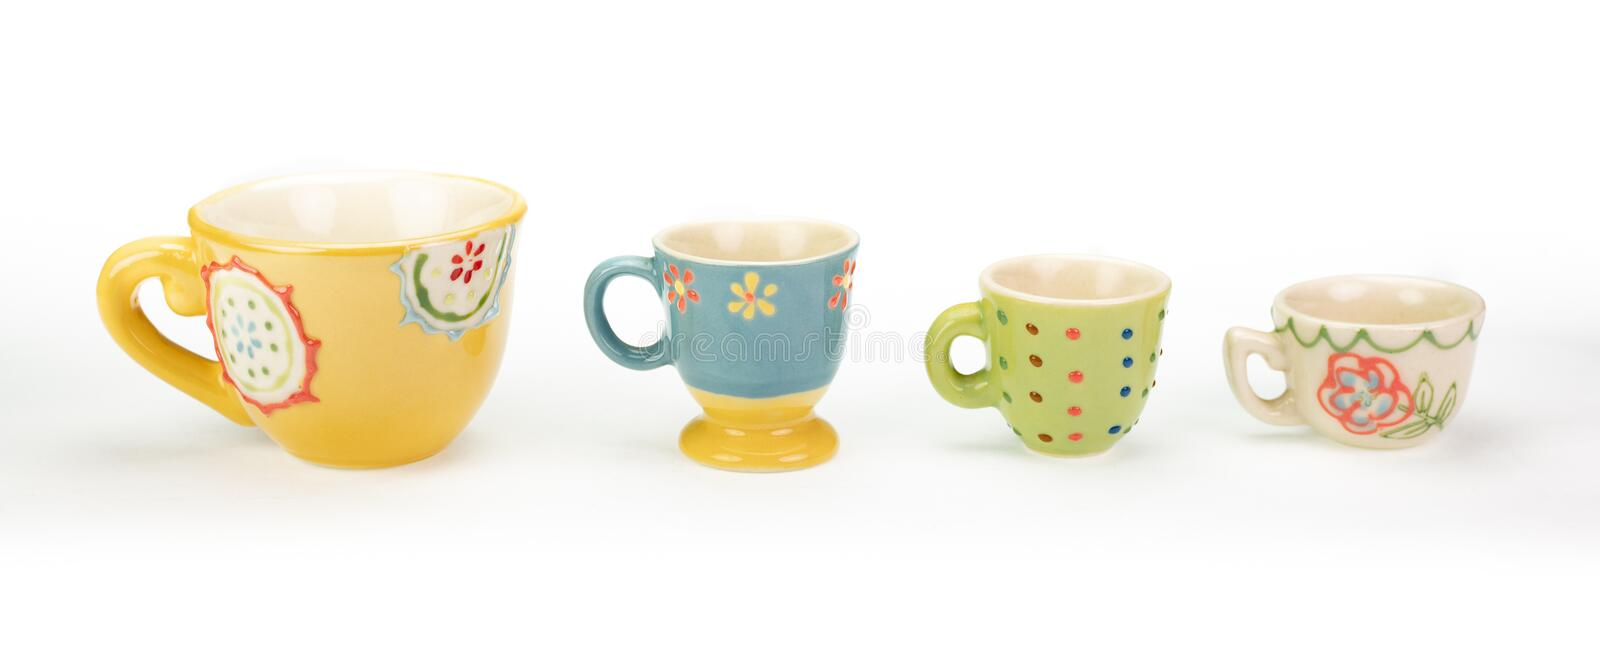 Four decorative ceramic teacups in a row. White background. stock image